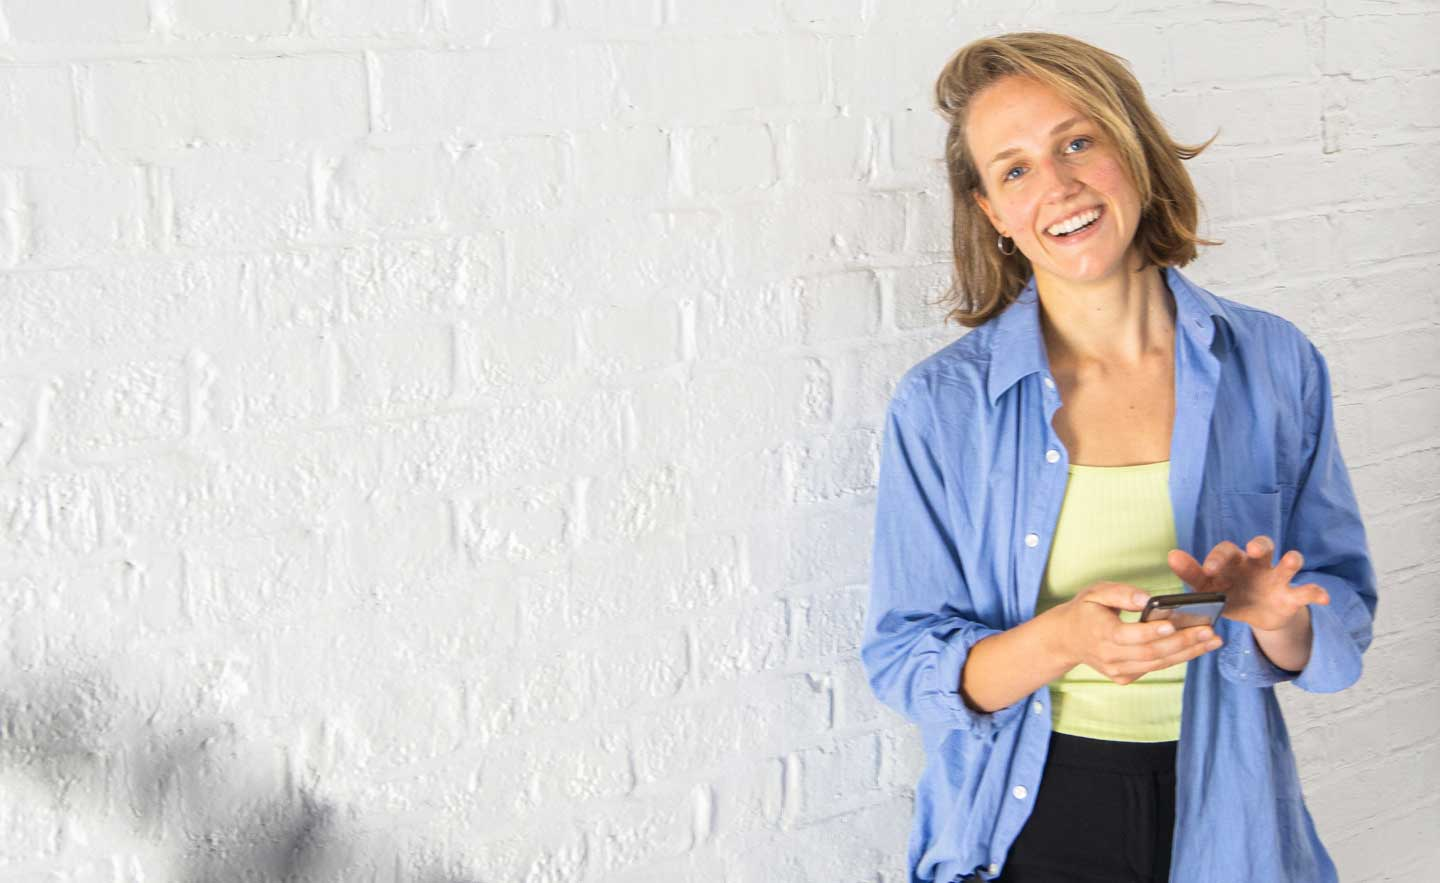 woman holding phone smiling happily